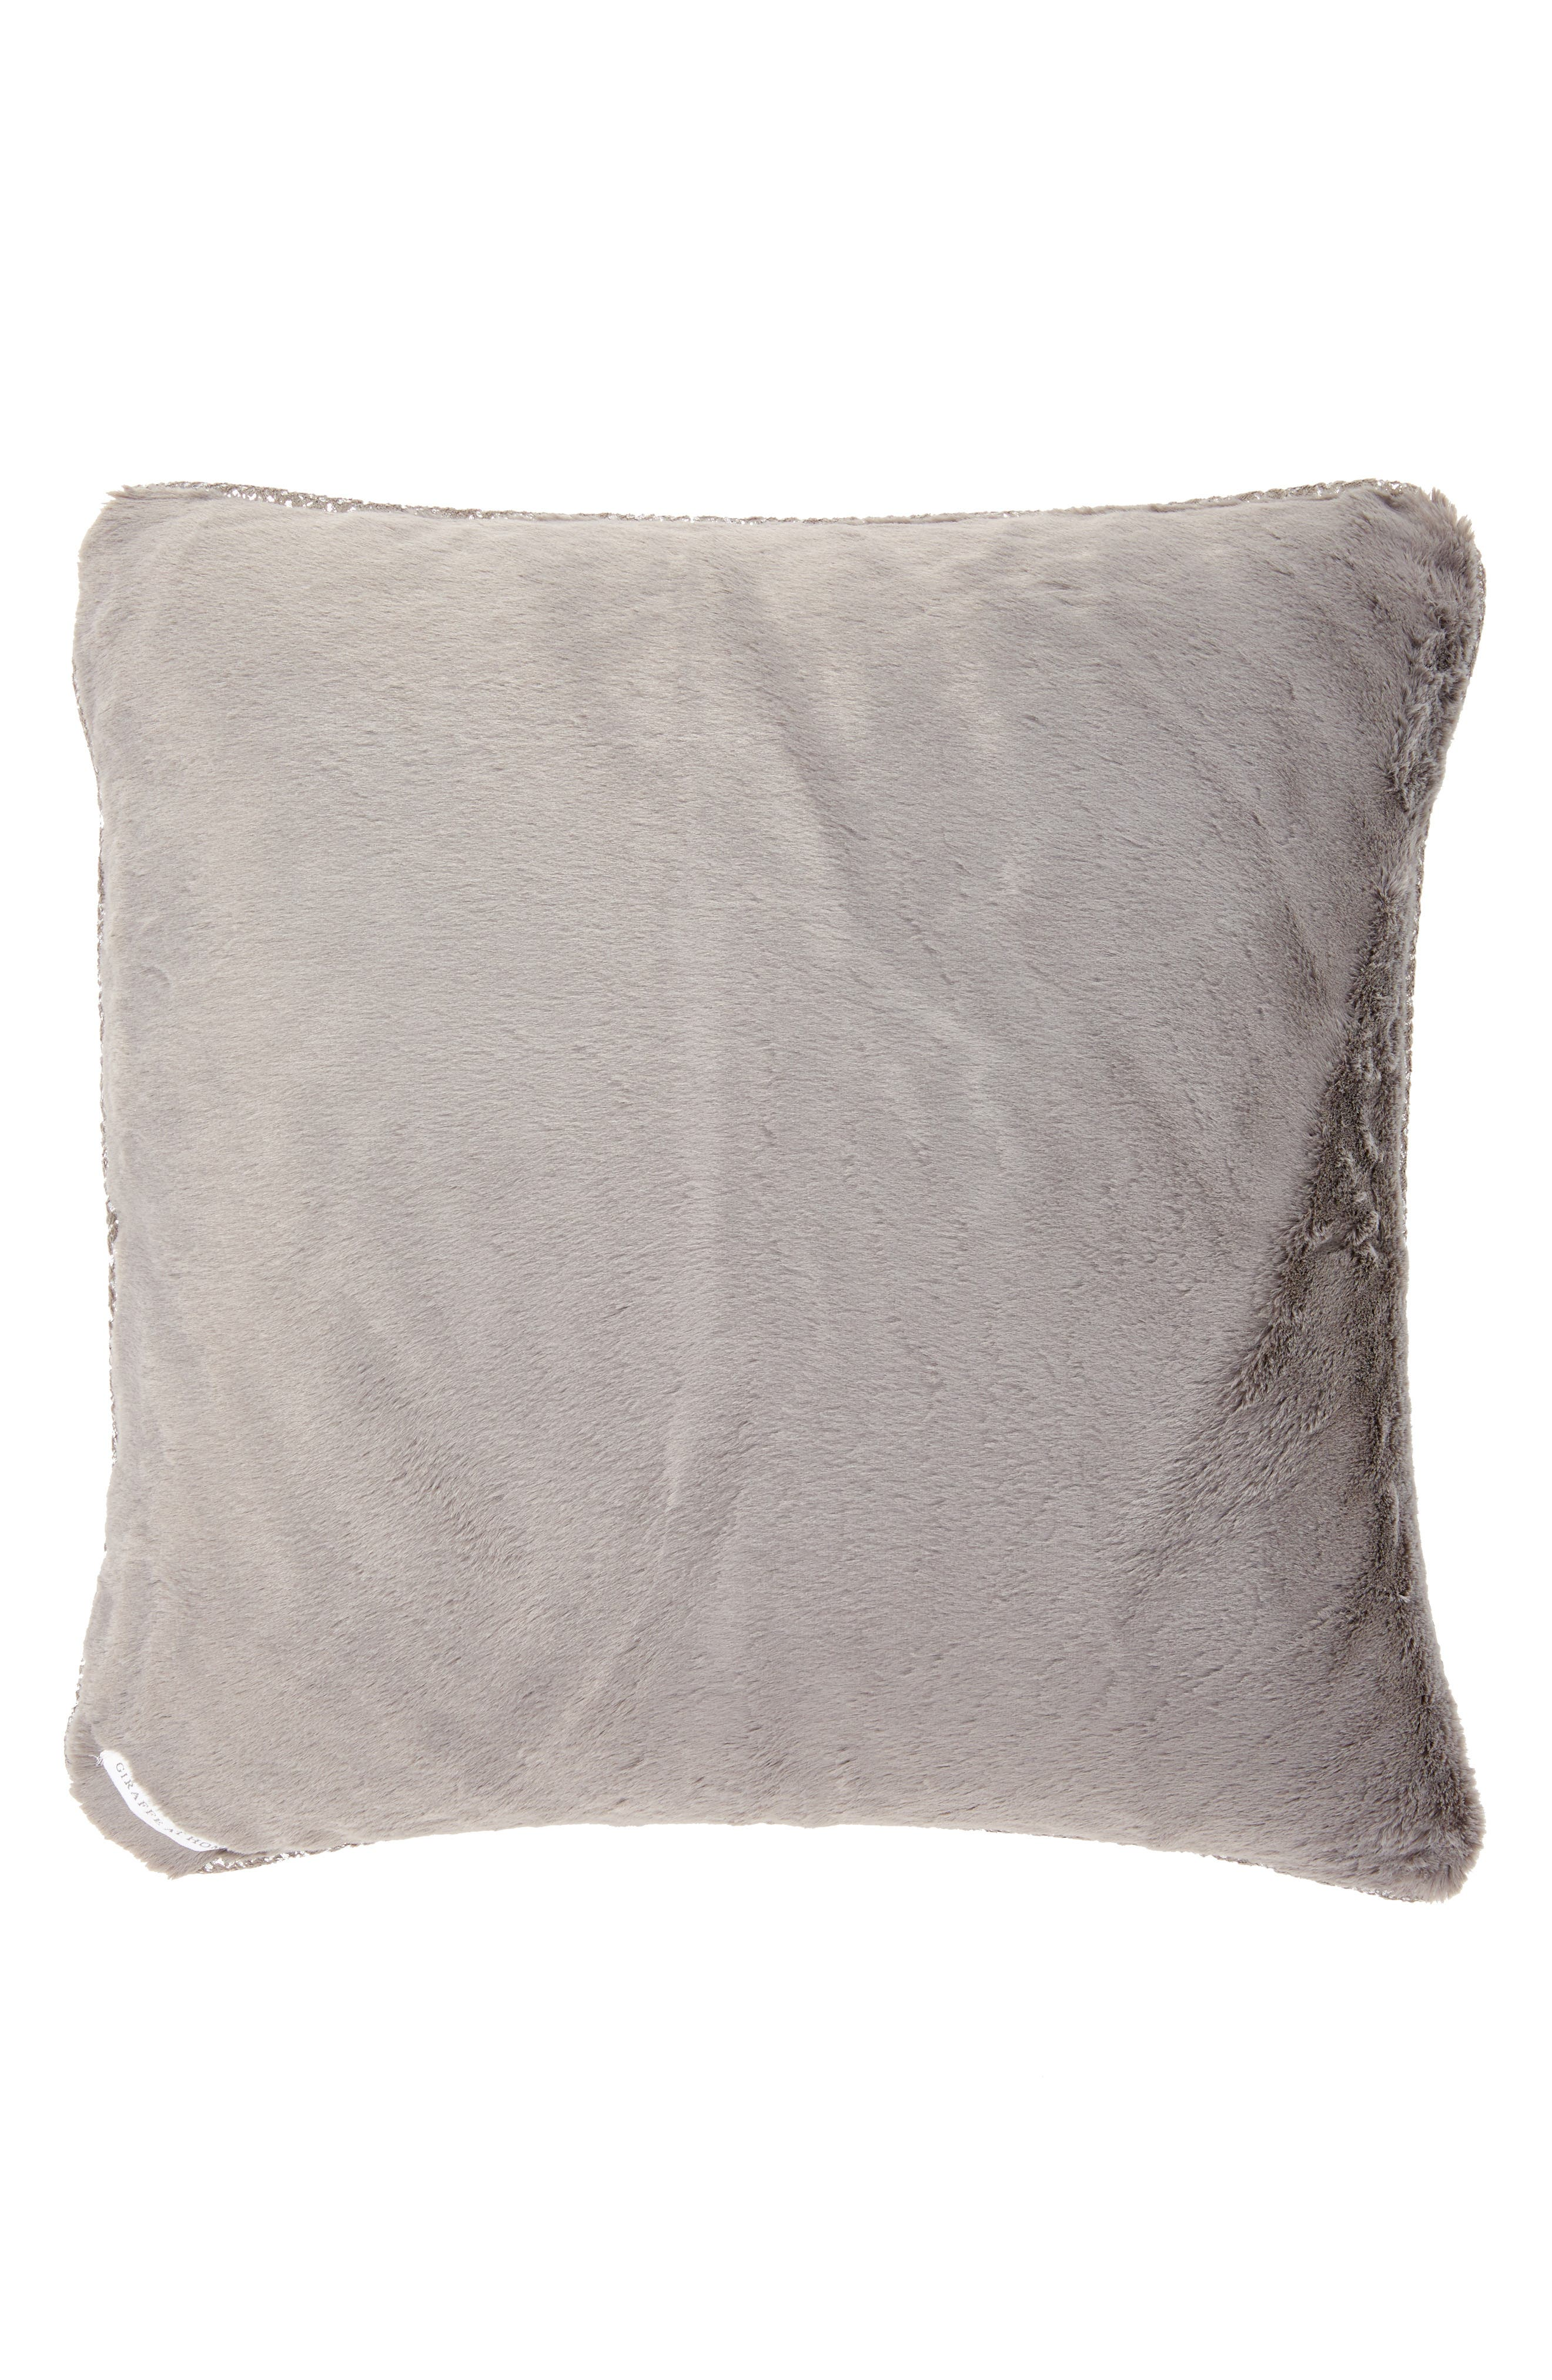 Luxe<sup>™</sup> Lustre Pillow,                         Main,                         color, CHARCOAL